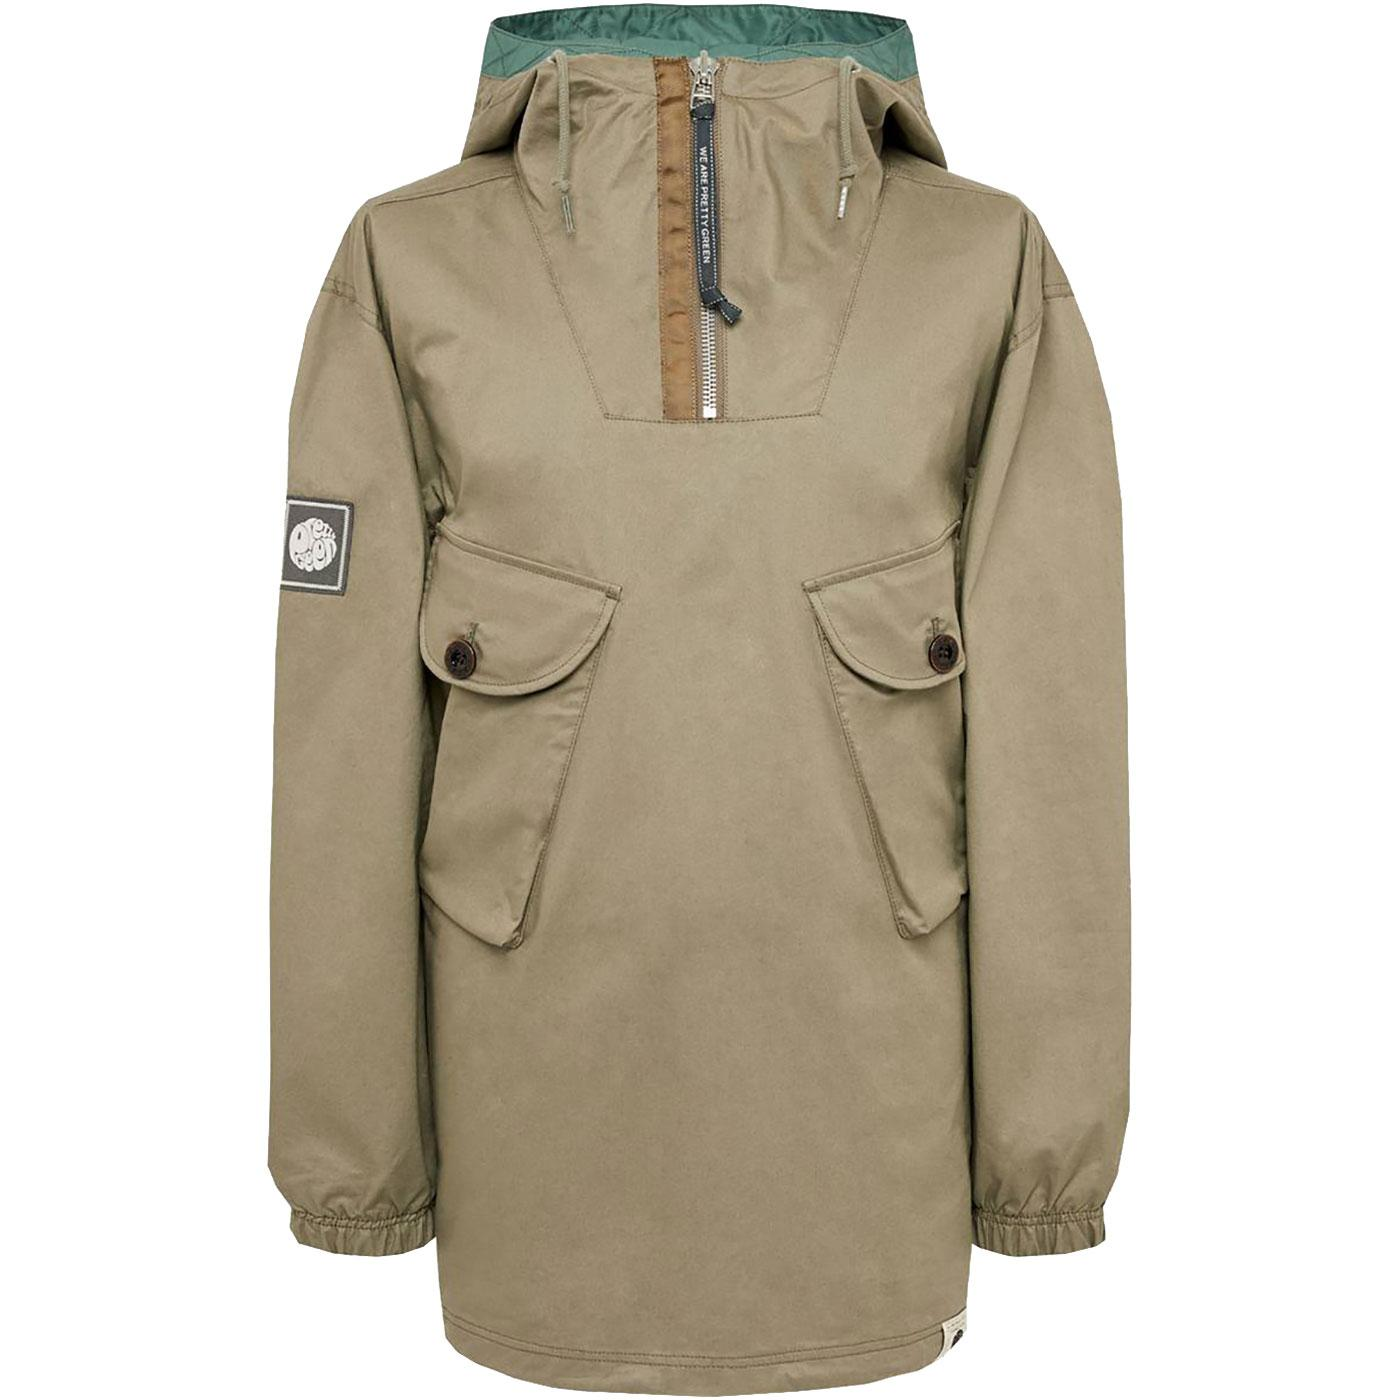 PRETTY GREEN Retro Two Pocket Overhead Jacket K